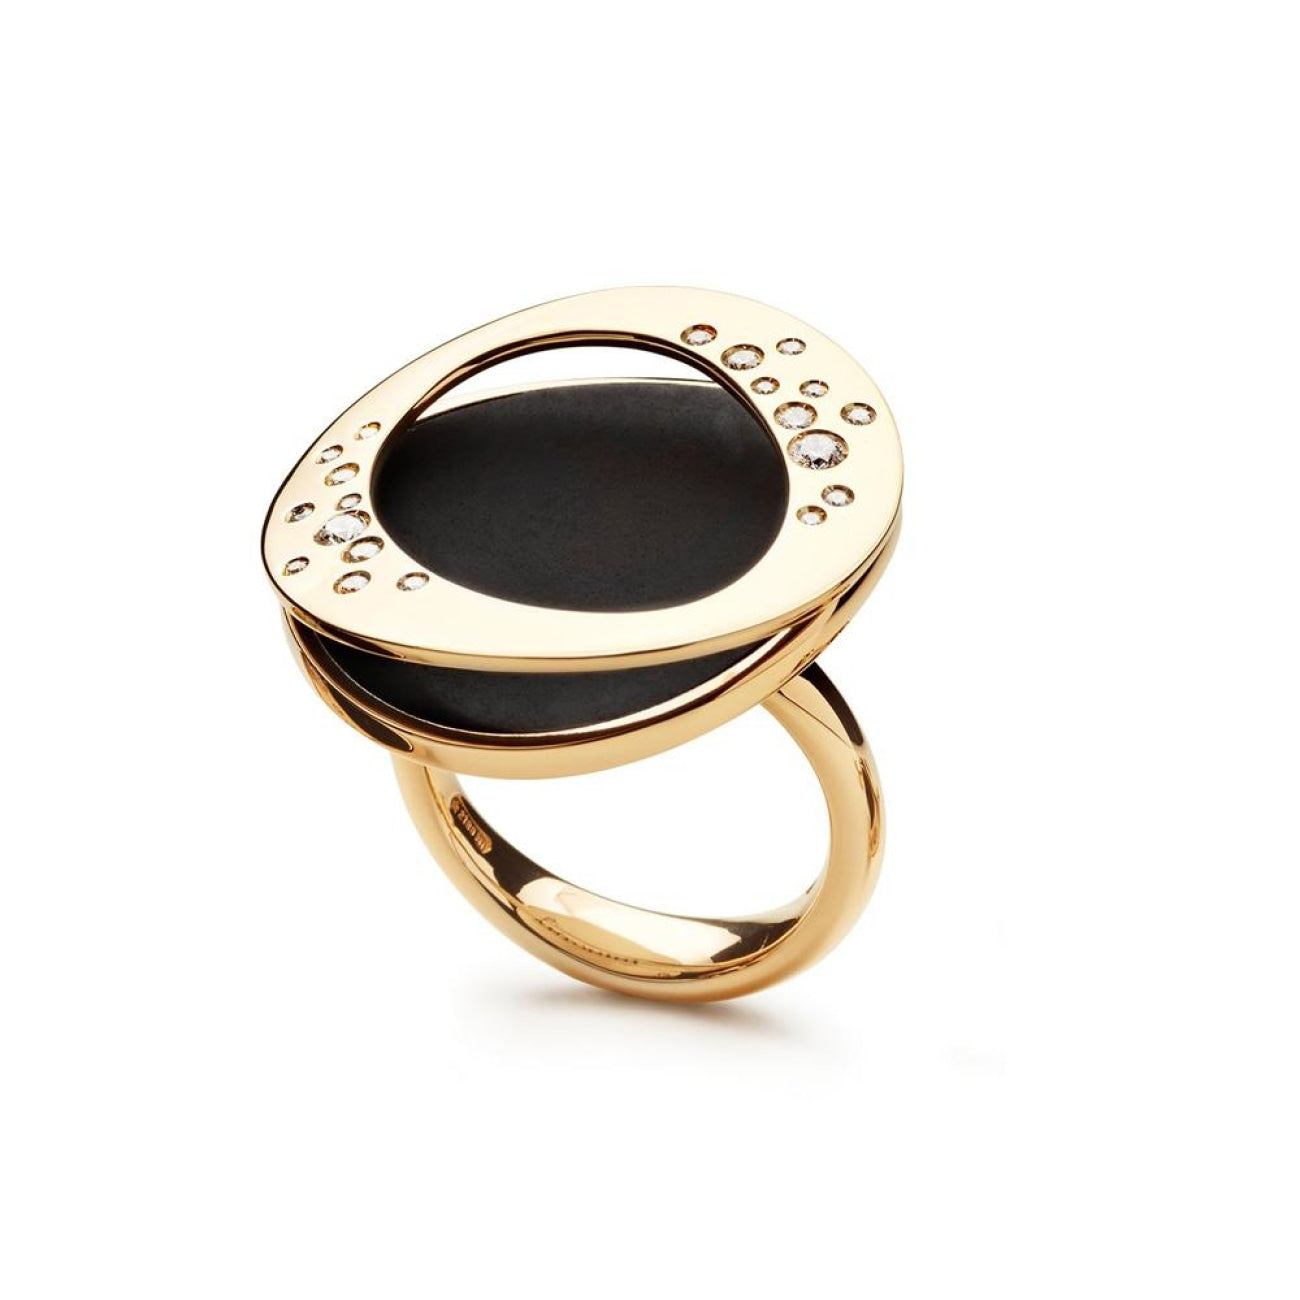 Antonini Jewelry - Antonini - Atolli collection ring L jet | Manfredi Jewels